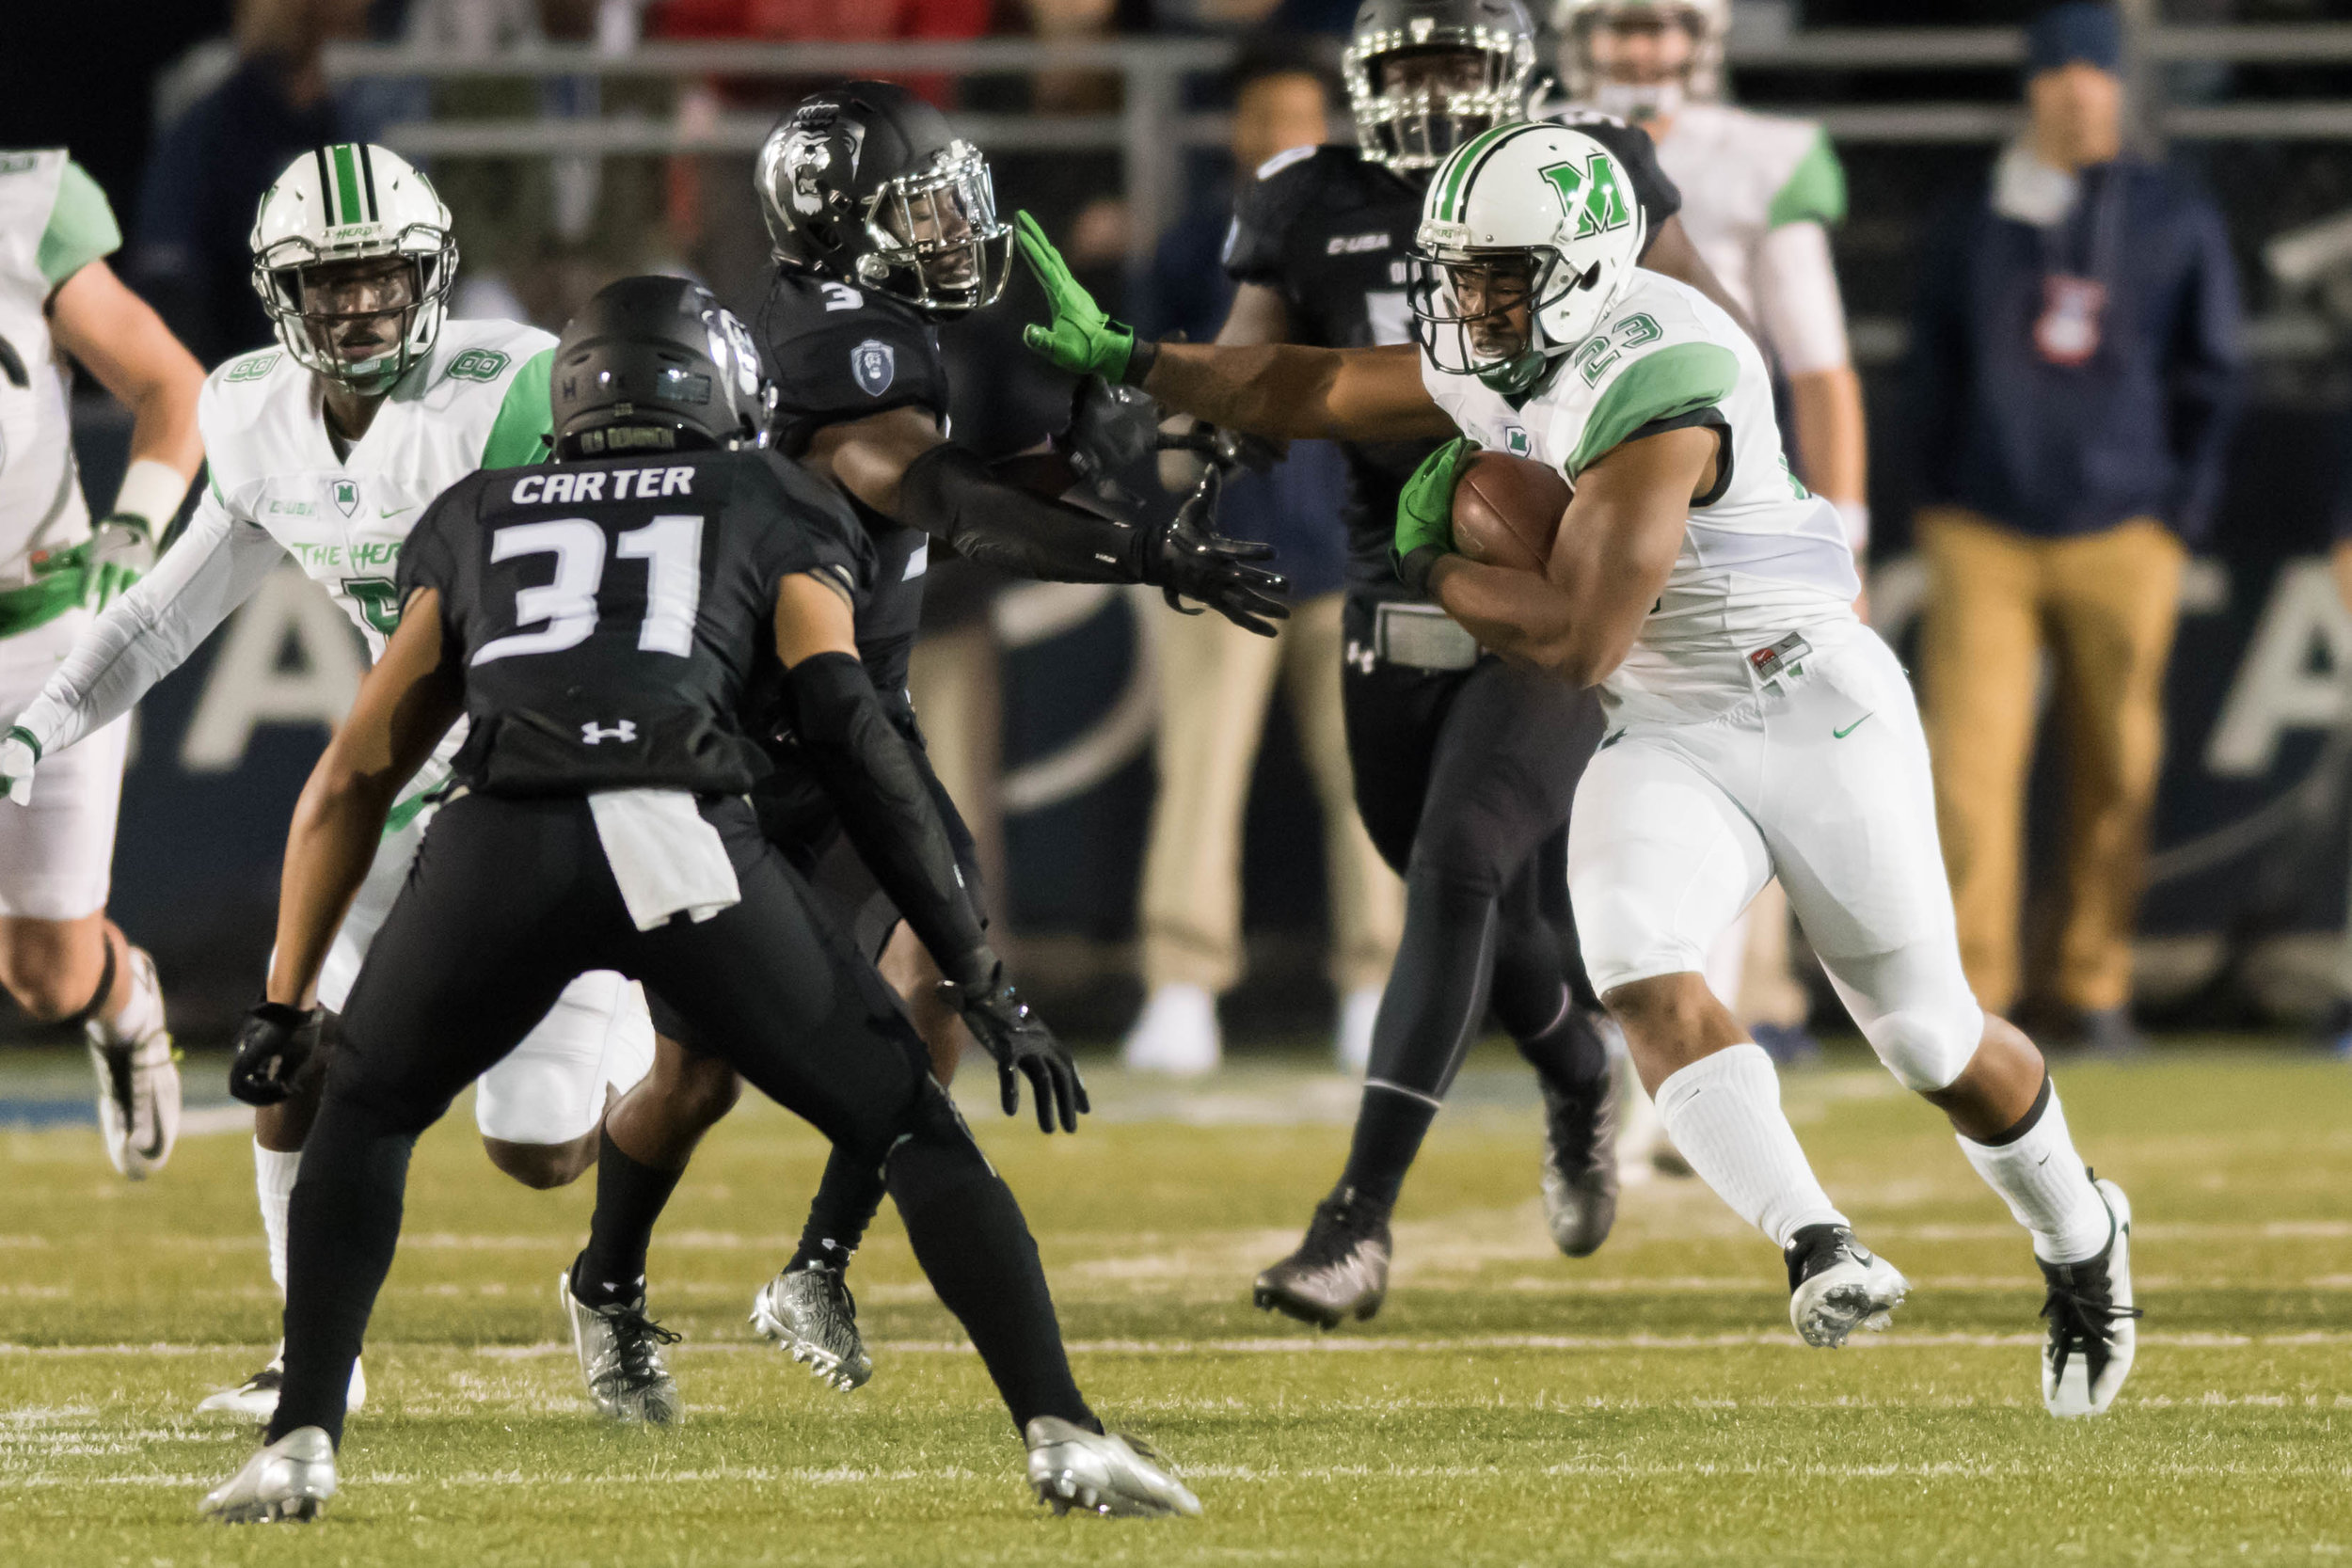 Marshall Thundering Herd running back Tony Pittman (23) works past Old Dominion Monarchs safety C.J. Bradshaw (3) during the Saturday, November 5th game at Forman Field in Norfolk, Virginia. Old Dominion leads Marshall 21 to 7 at the half.Russell Tracy | for the Herald-Dispatch